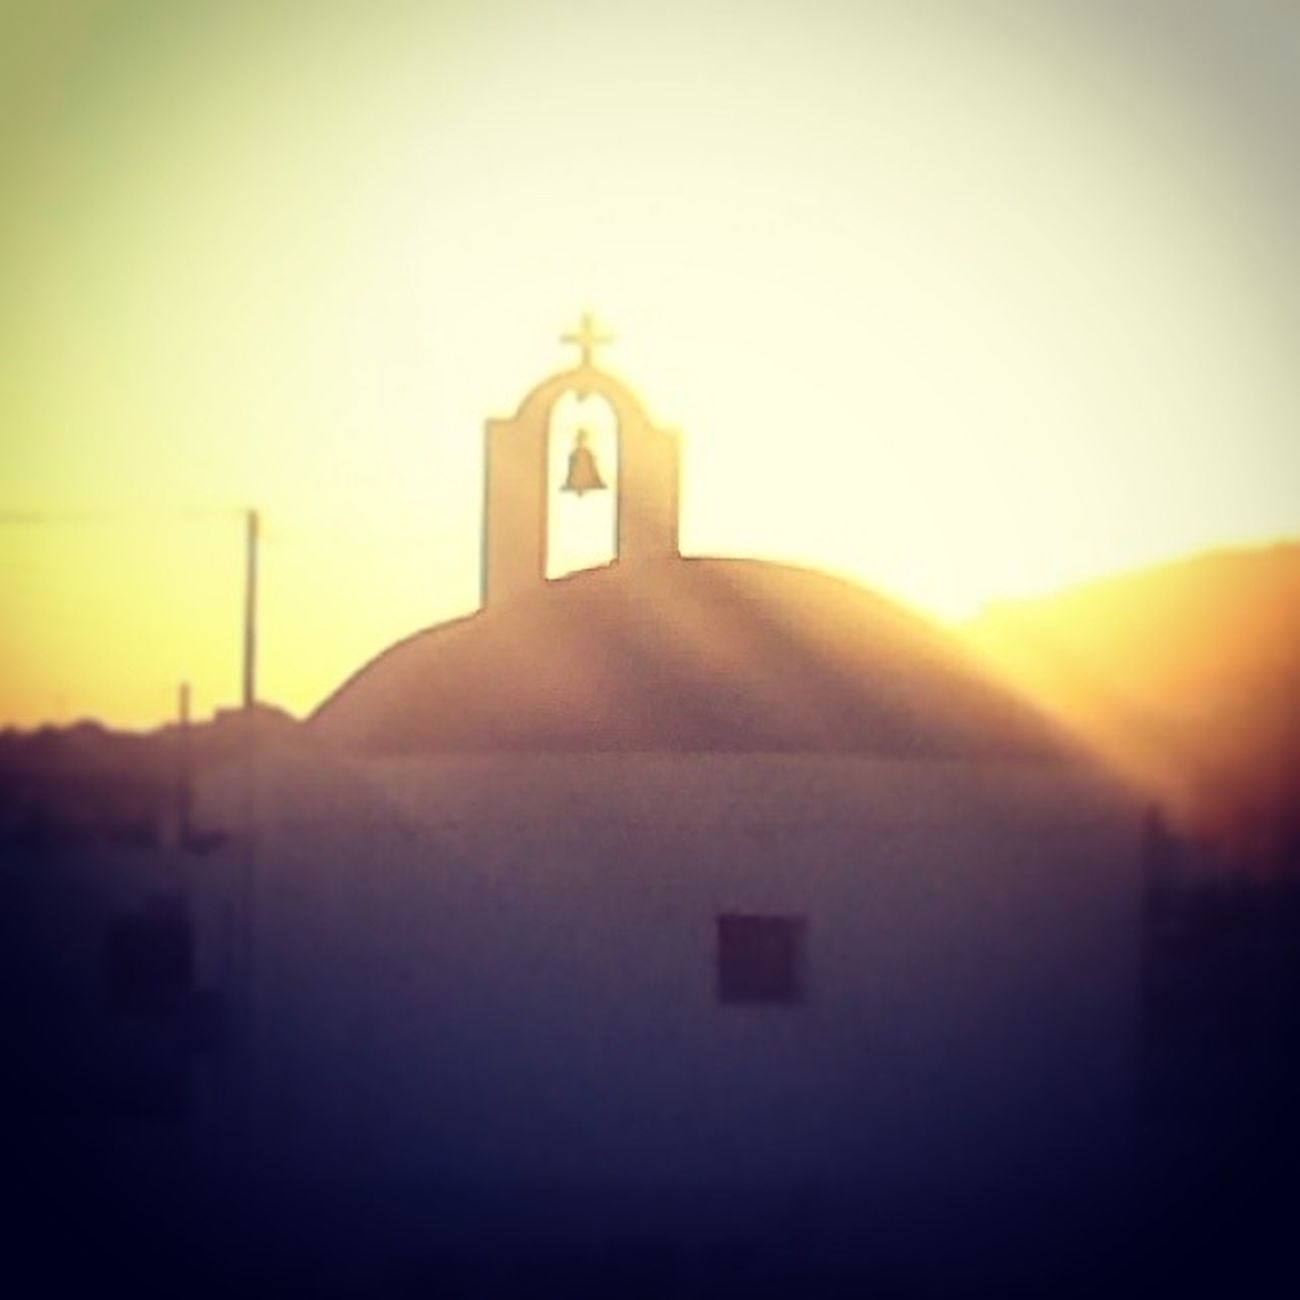 Church lights Santorini Sunset Thelightsareblindingmyeyes Greece